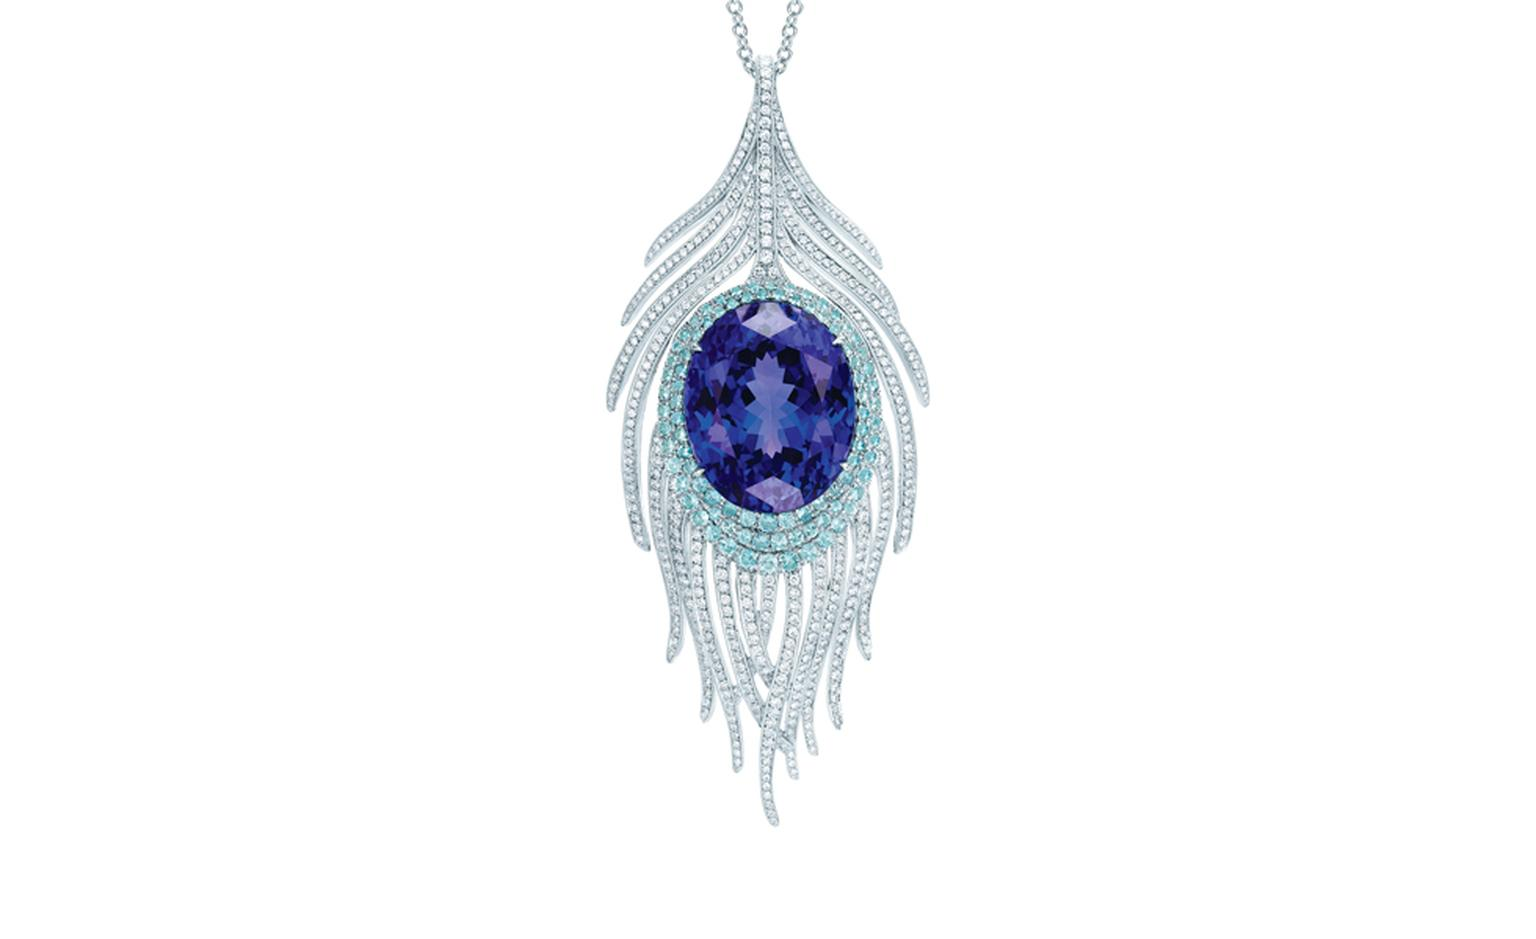 TIFFANY, Peacock Pendant. Price from $90,000